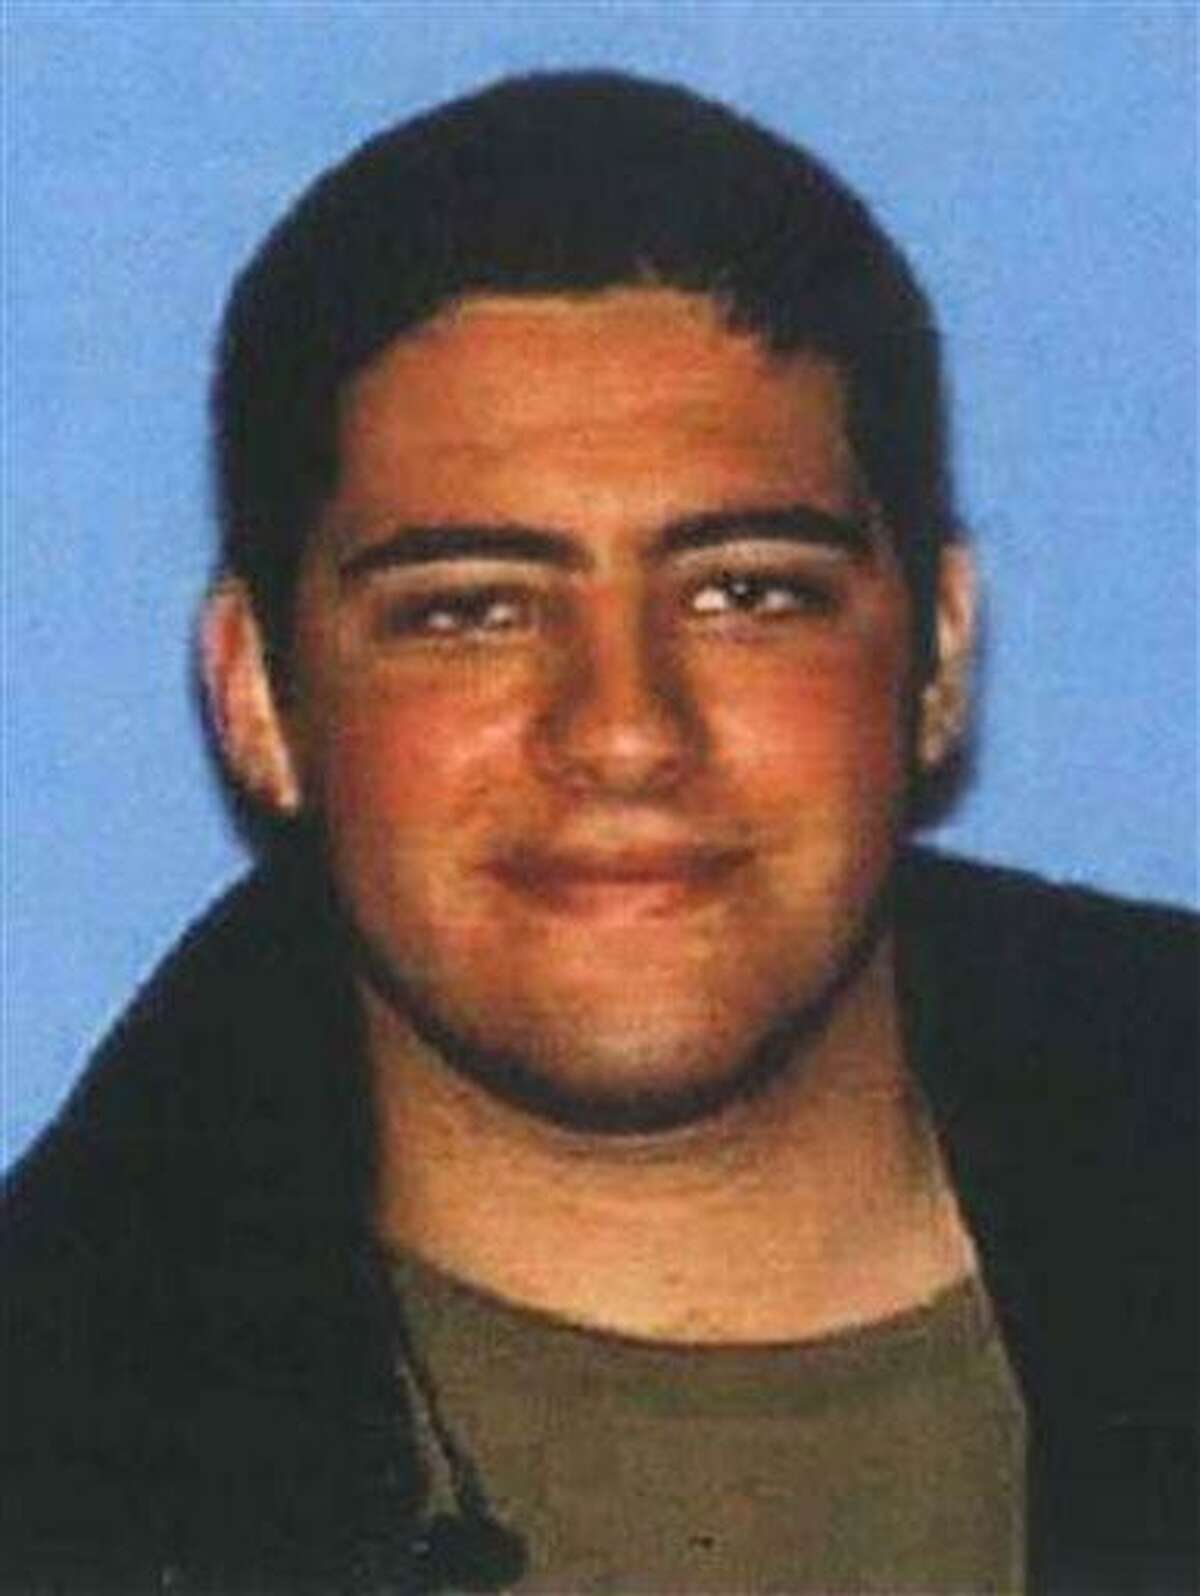 This undated photo provided on Sunday, June 9, 2013, by the Santa Monica Police Department shows John Zawahri, 23, who police have identified as the shooter in Friday's deadly rampage at Santa Monica College. The suspect was shot and killed by authorities Friday after a violent spree that claimed the lives of five people and wounded several others. (AP Photo/Santa Monica Police Department)